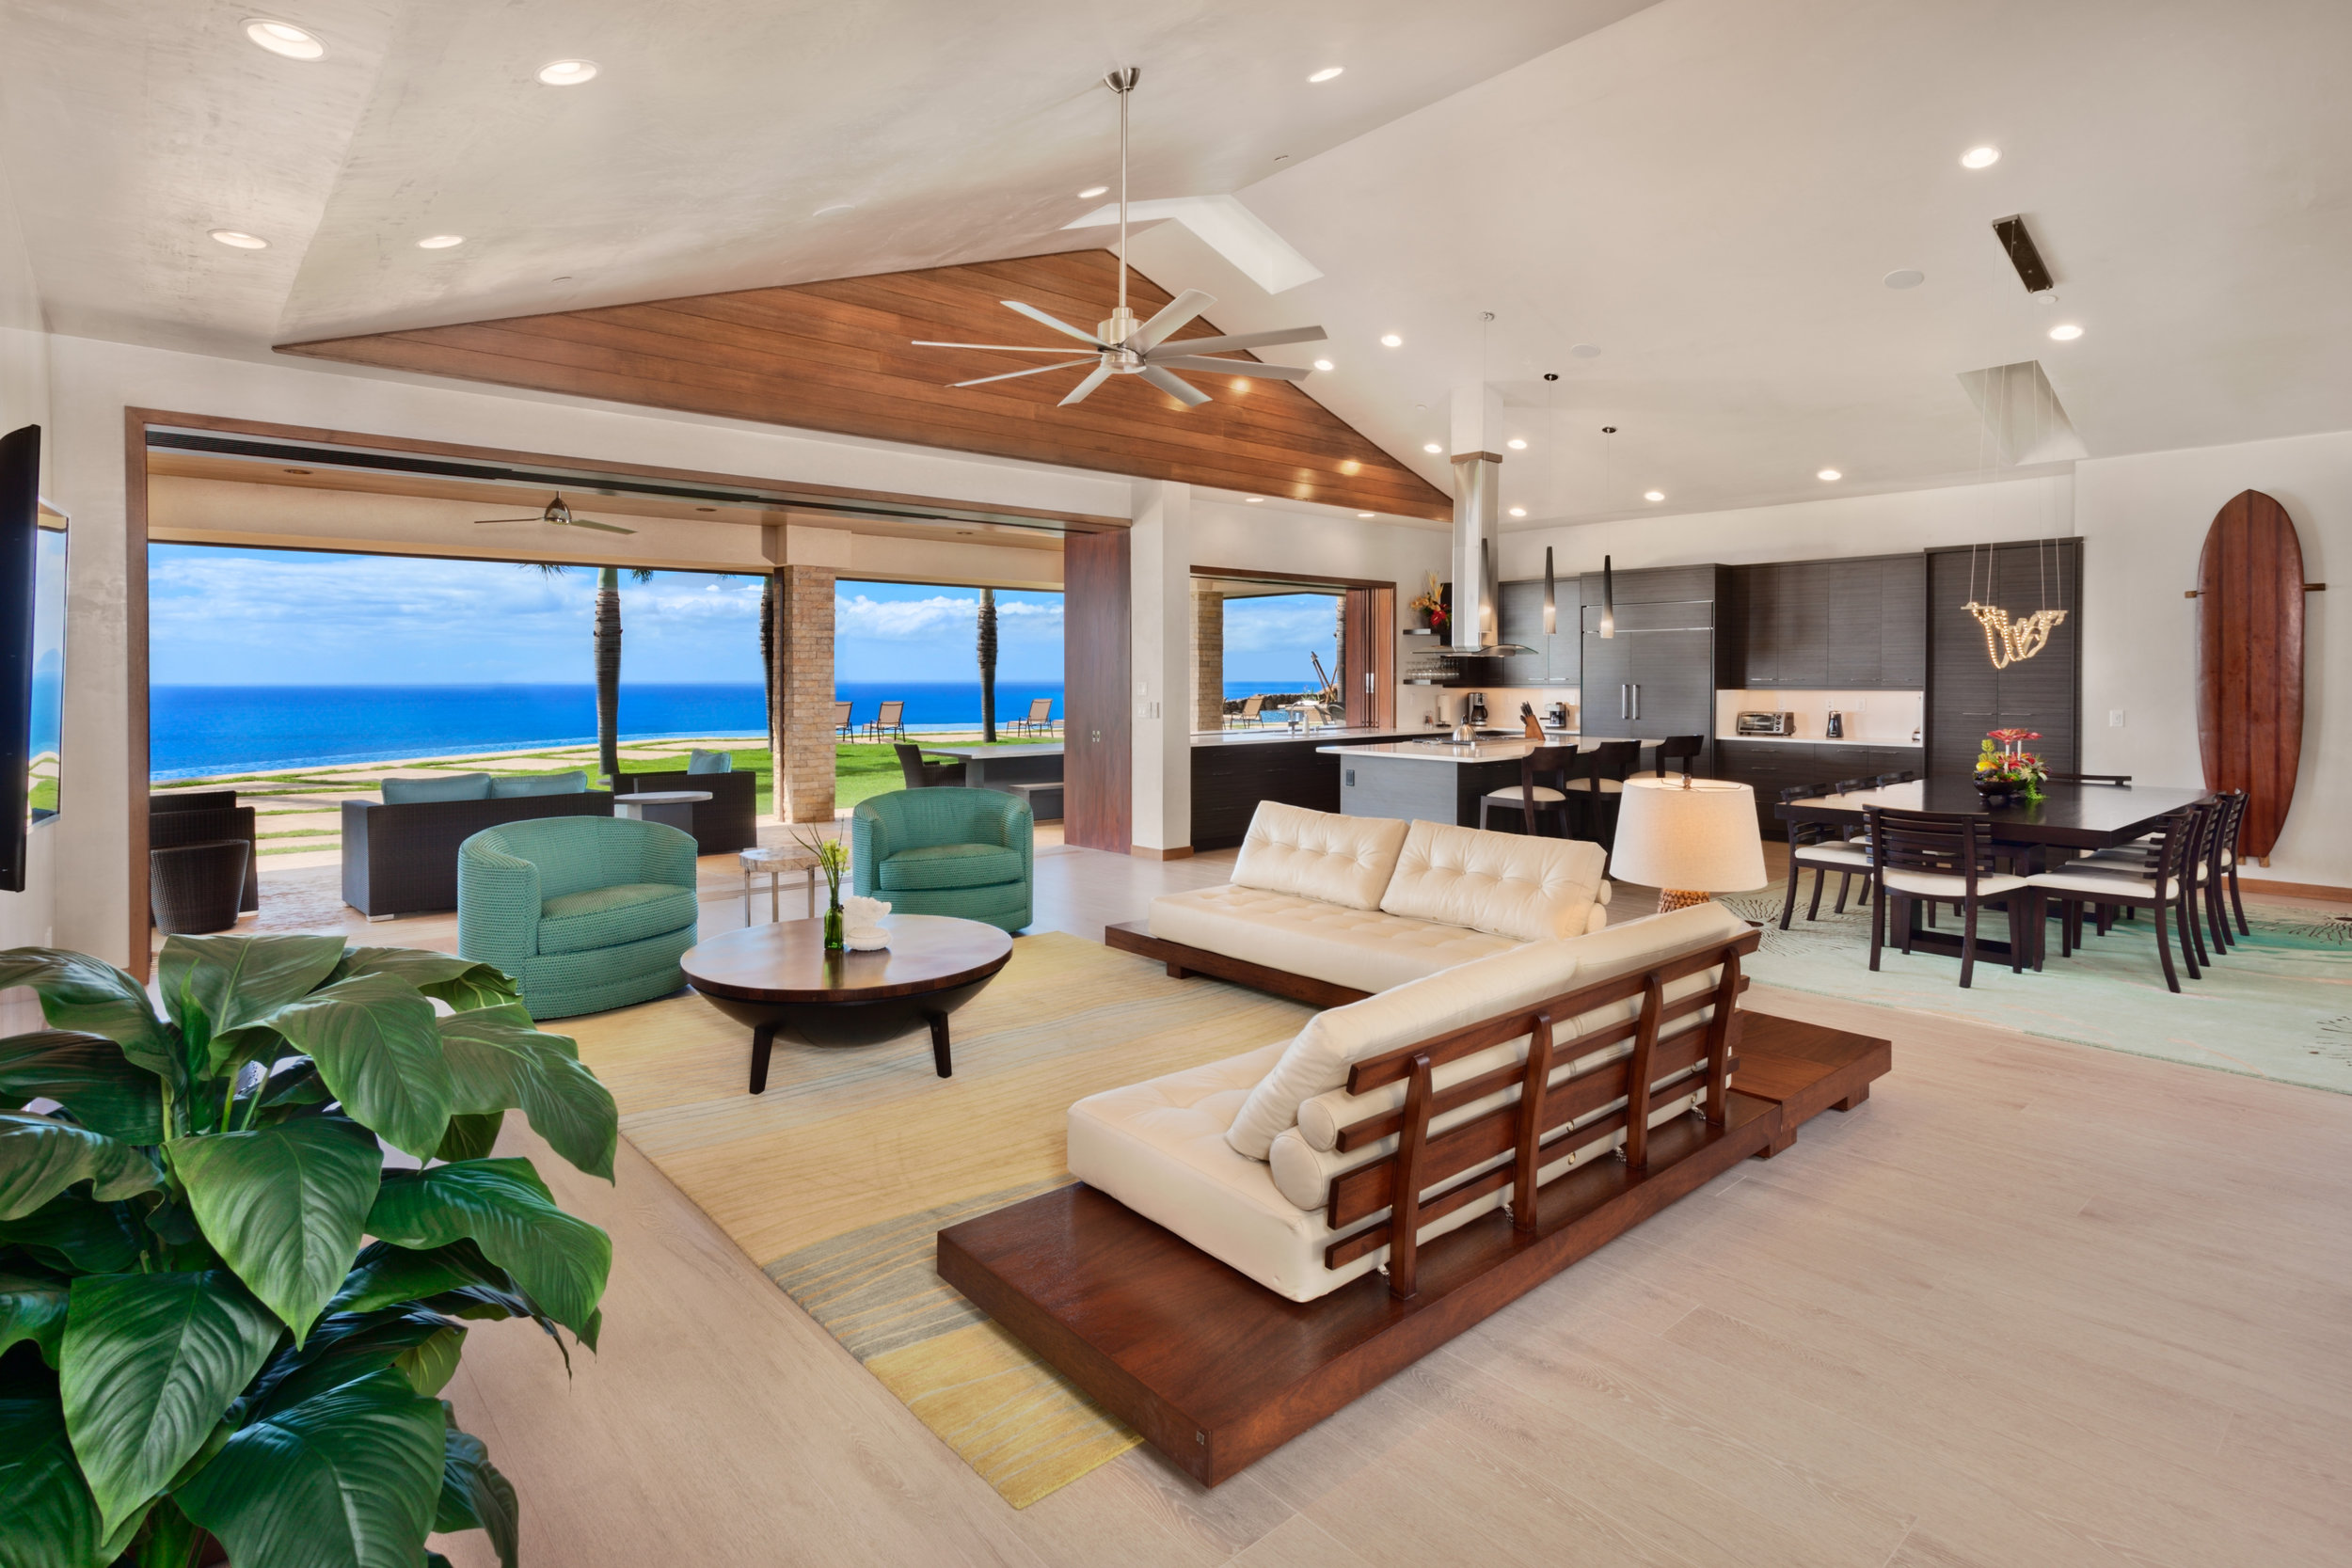 OCEAN VISTA - $3,995,000 250 AINA MAHIAI PLACE - KA'ANAPALI COFFEE FARMS